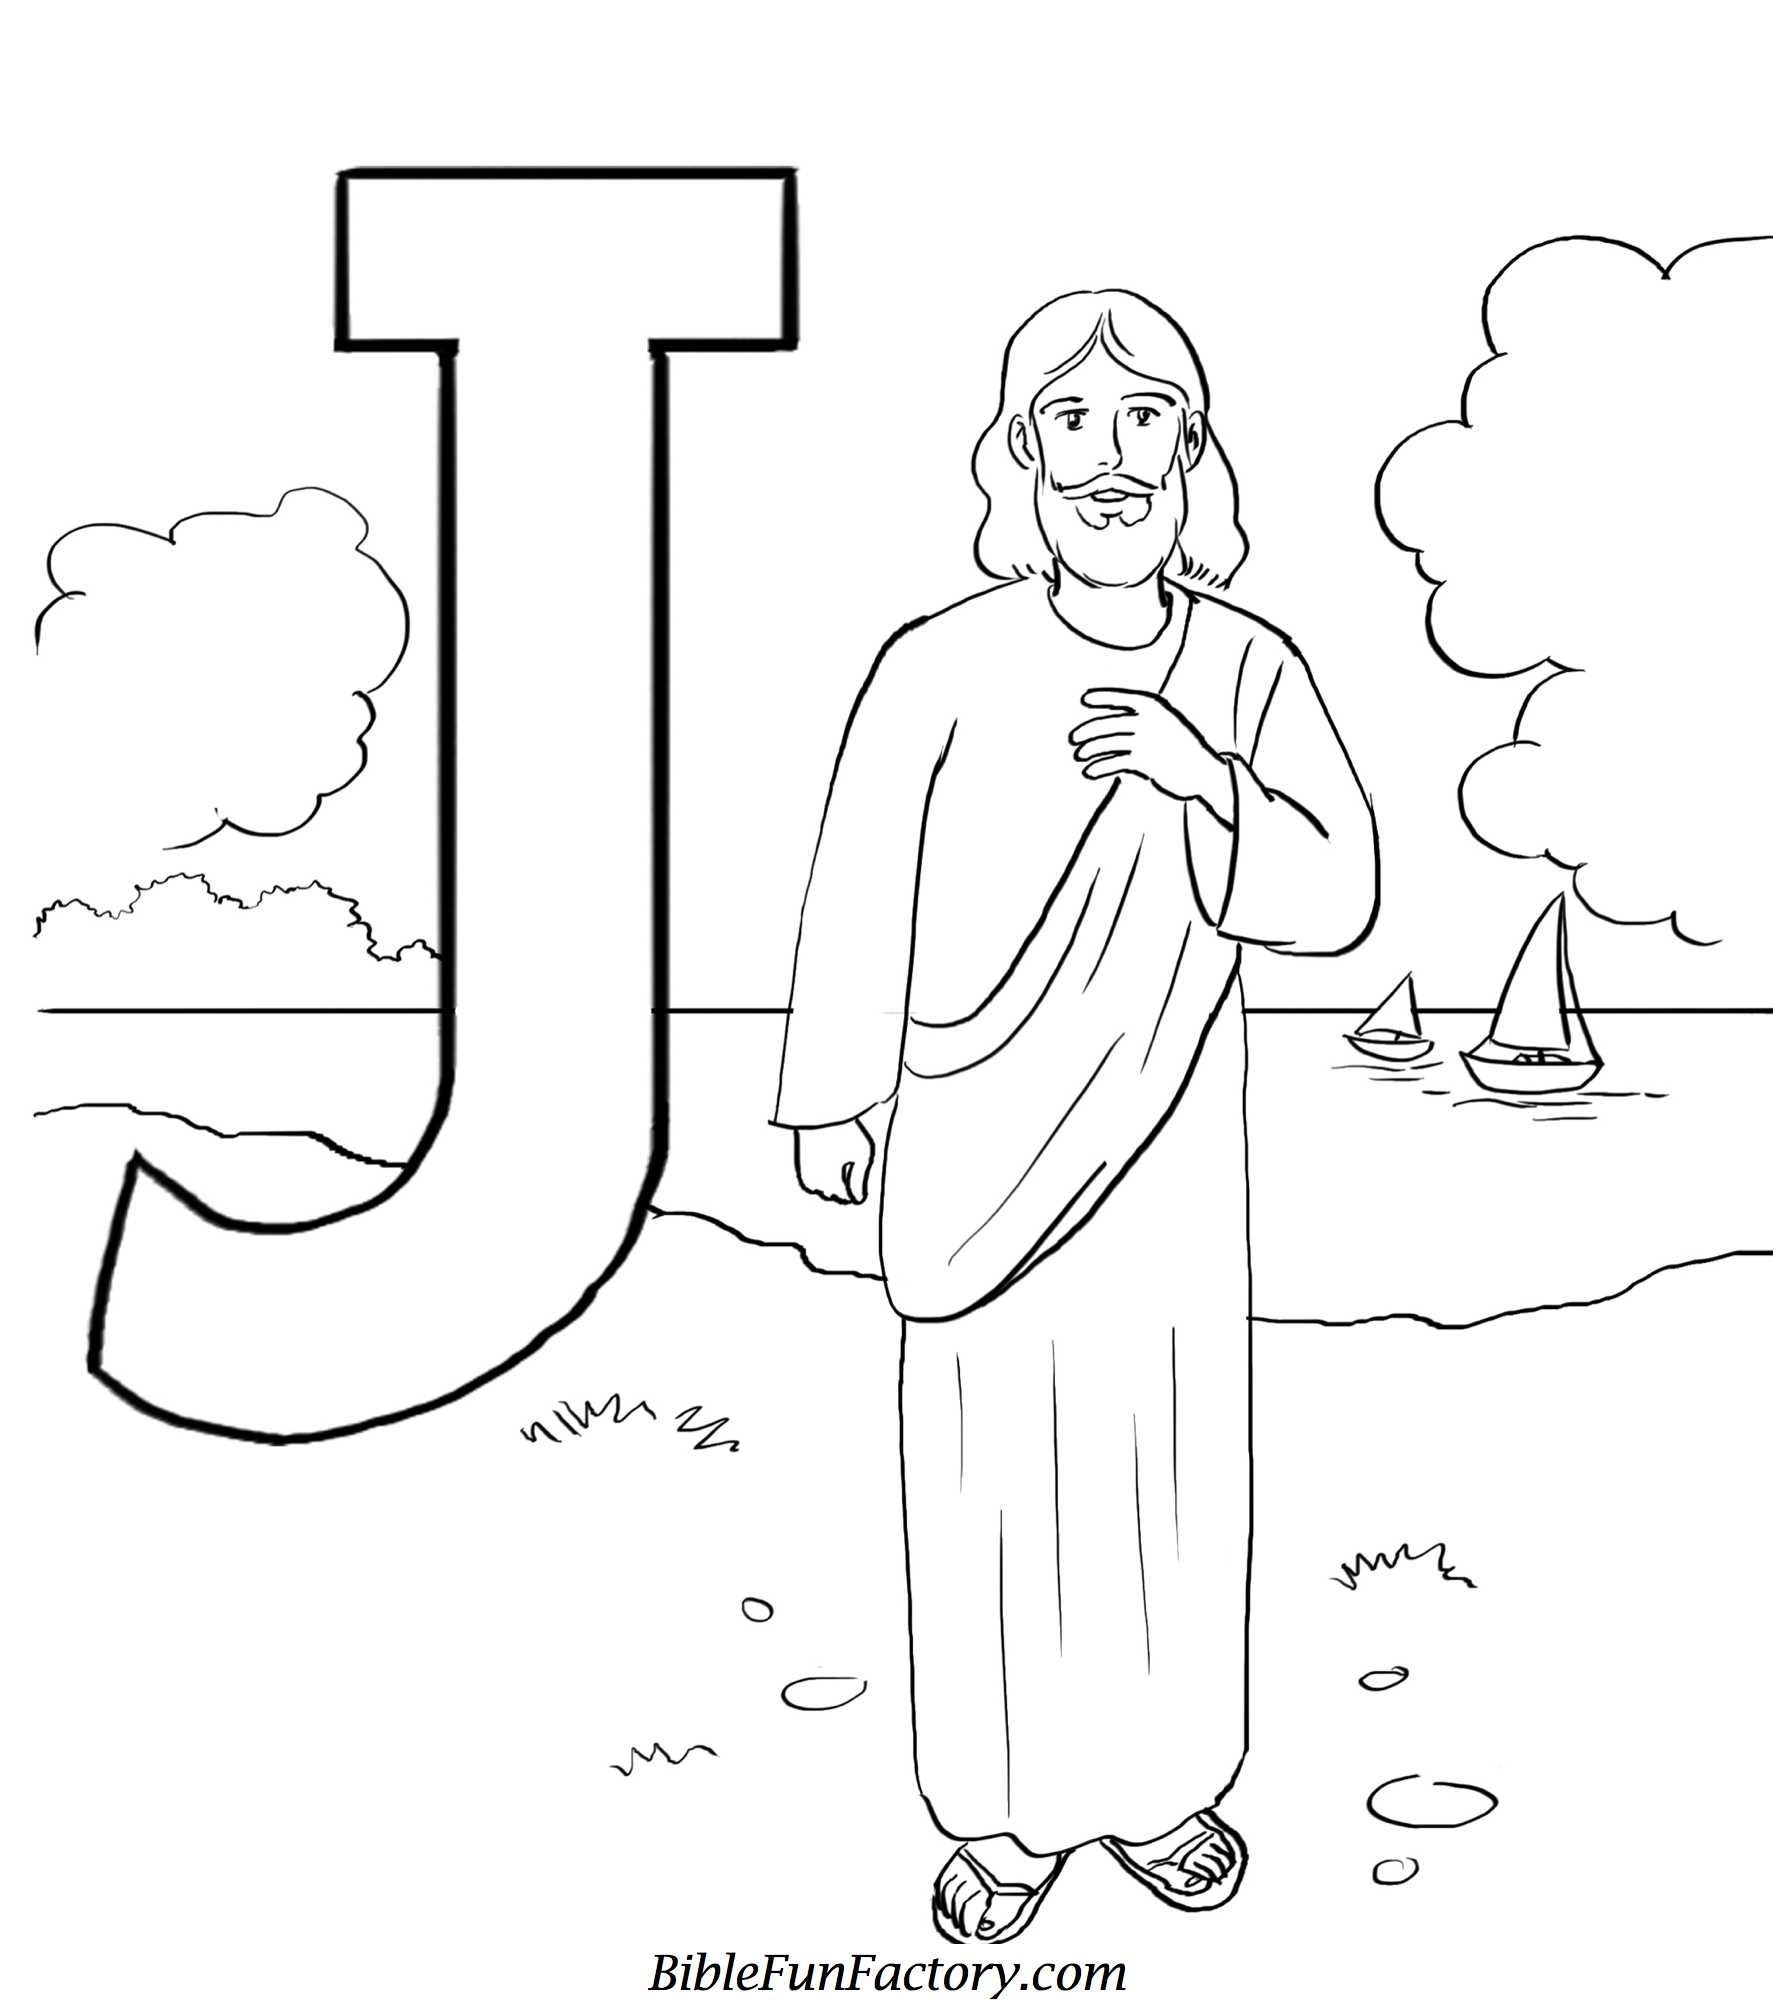 Coloring pages bible stories preschoolers - Jesus Christ Coloring Pages Is For Jesus Coloring Sheet